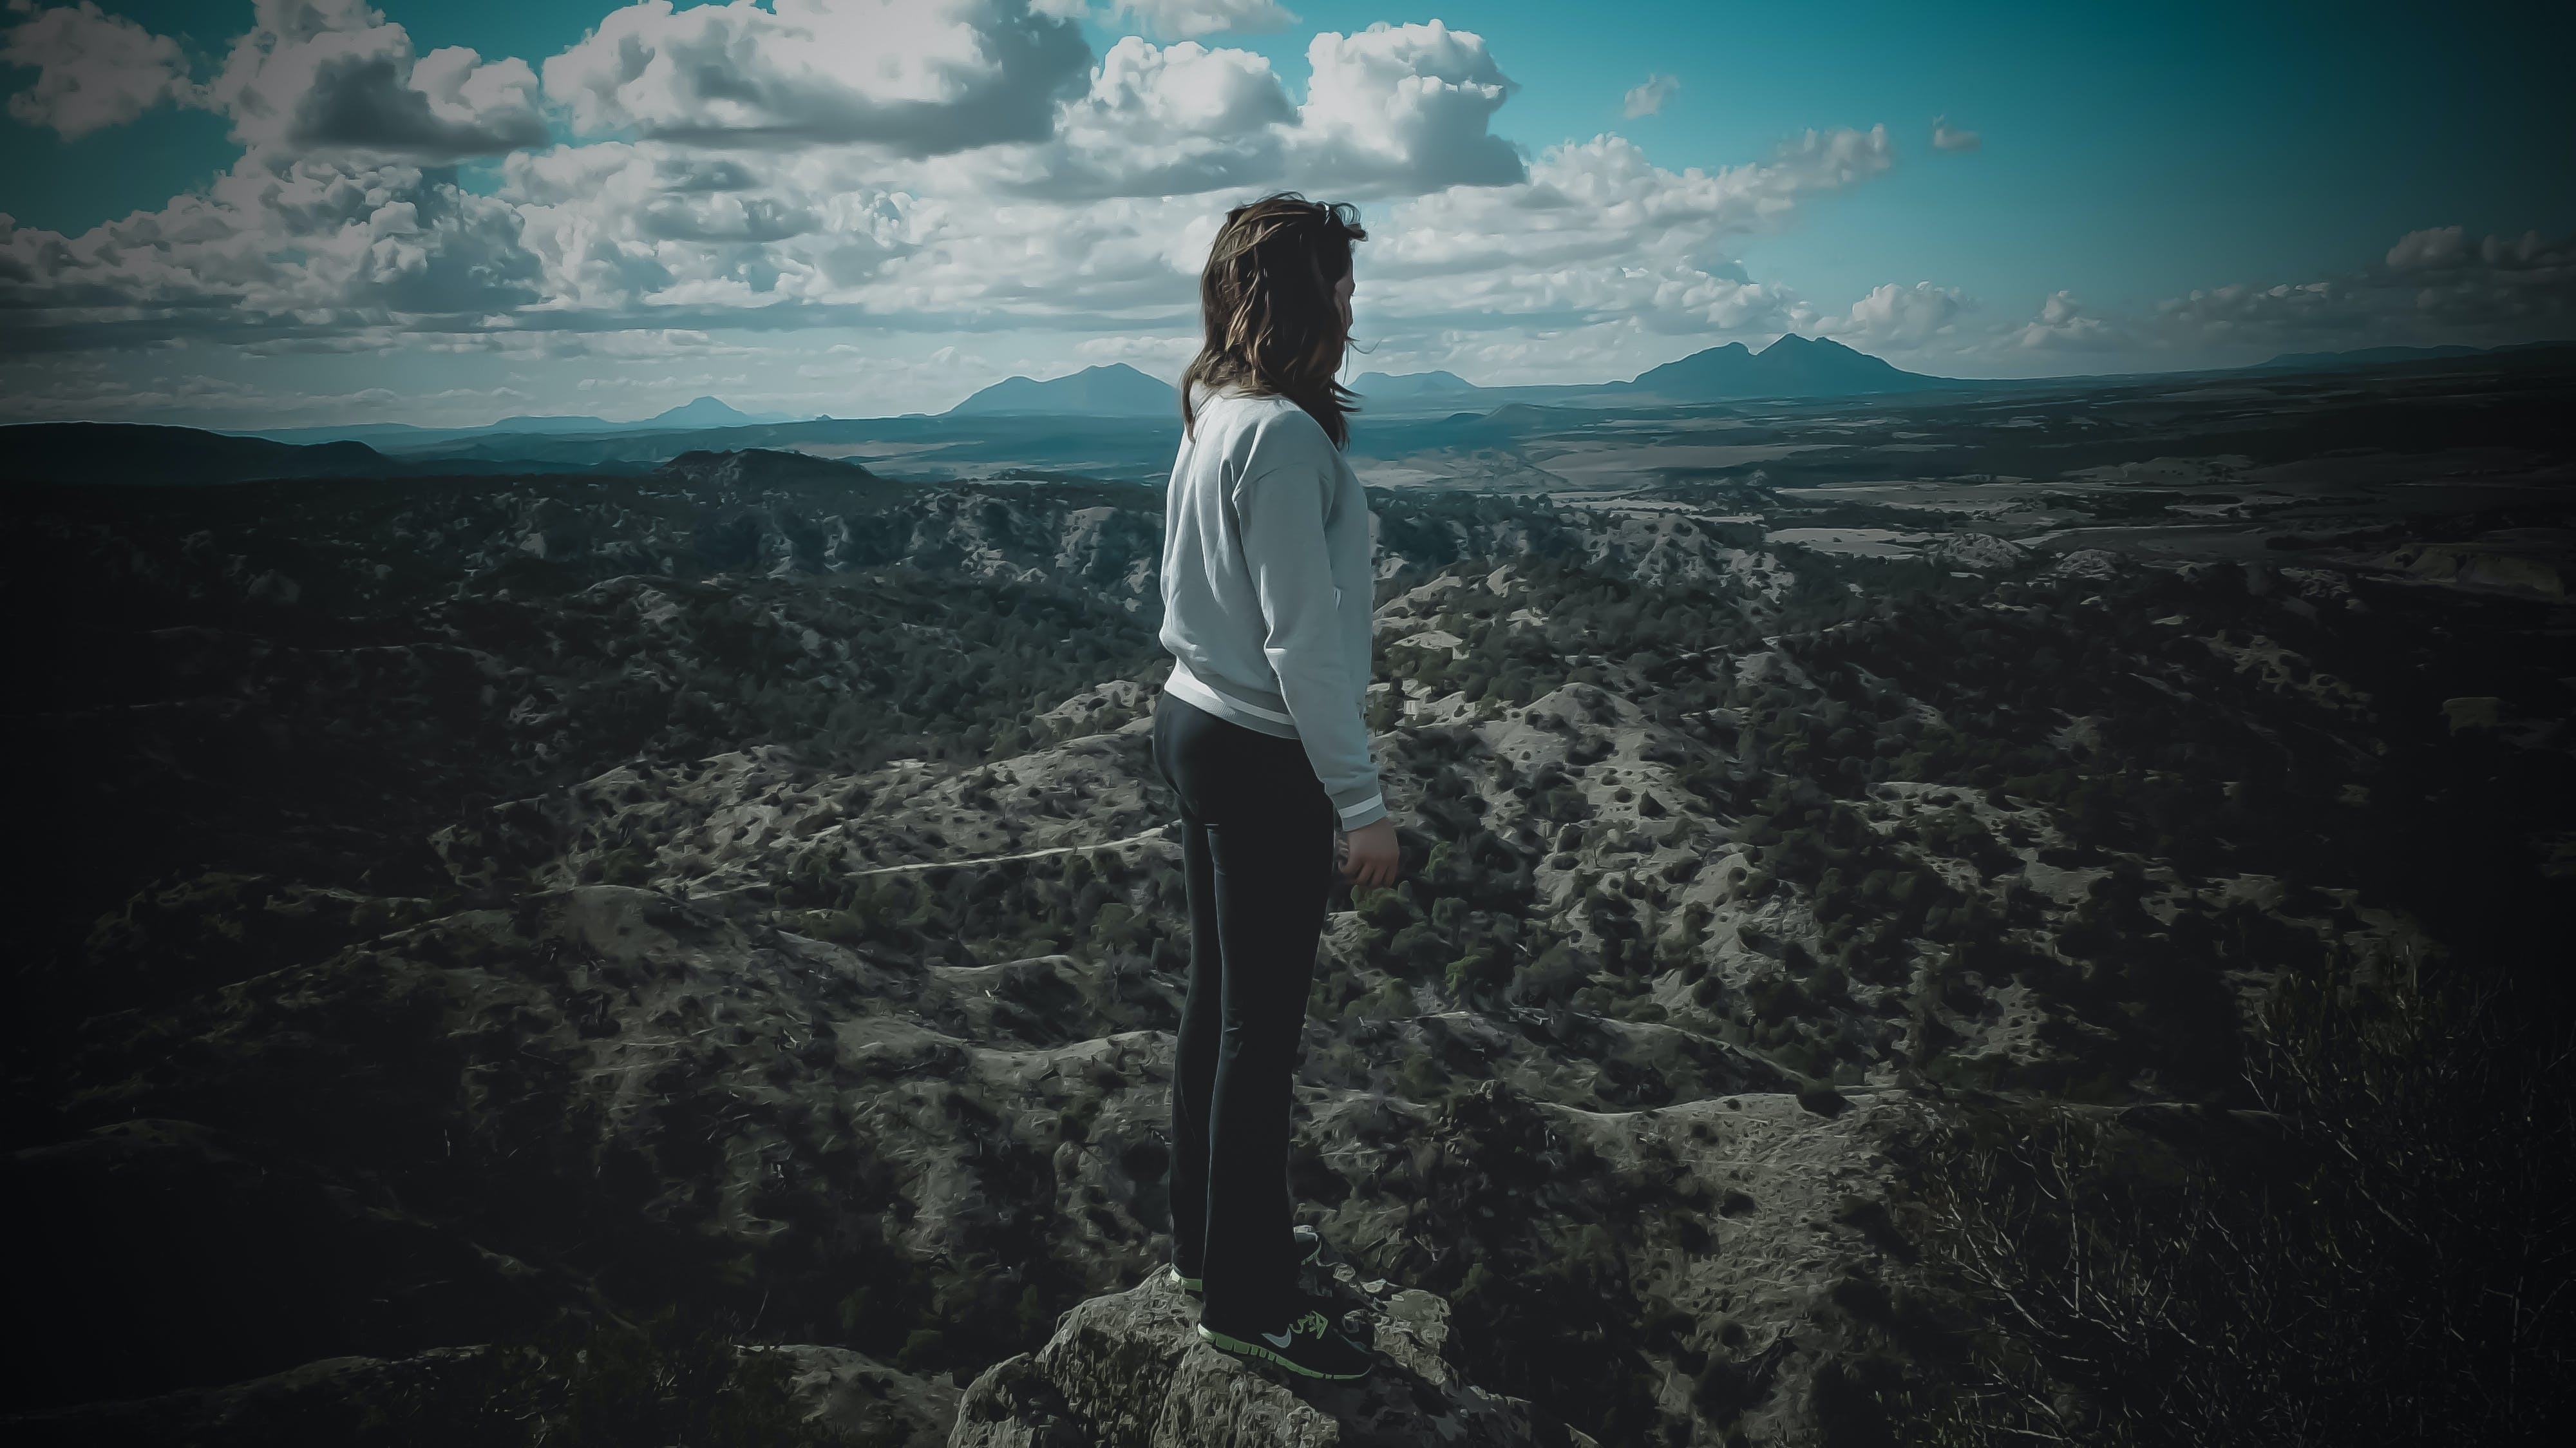 Person in Gray Long-sleeved Shirt Standing on Top of Mountain